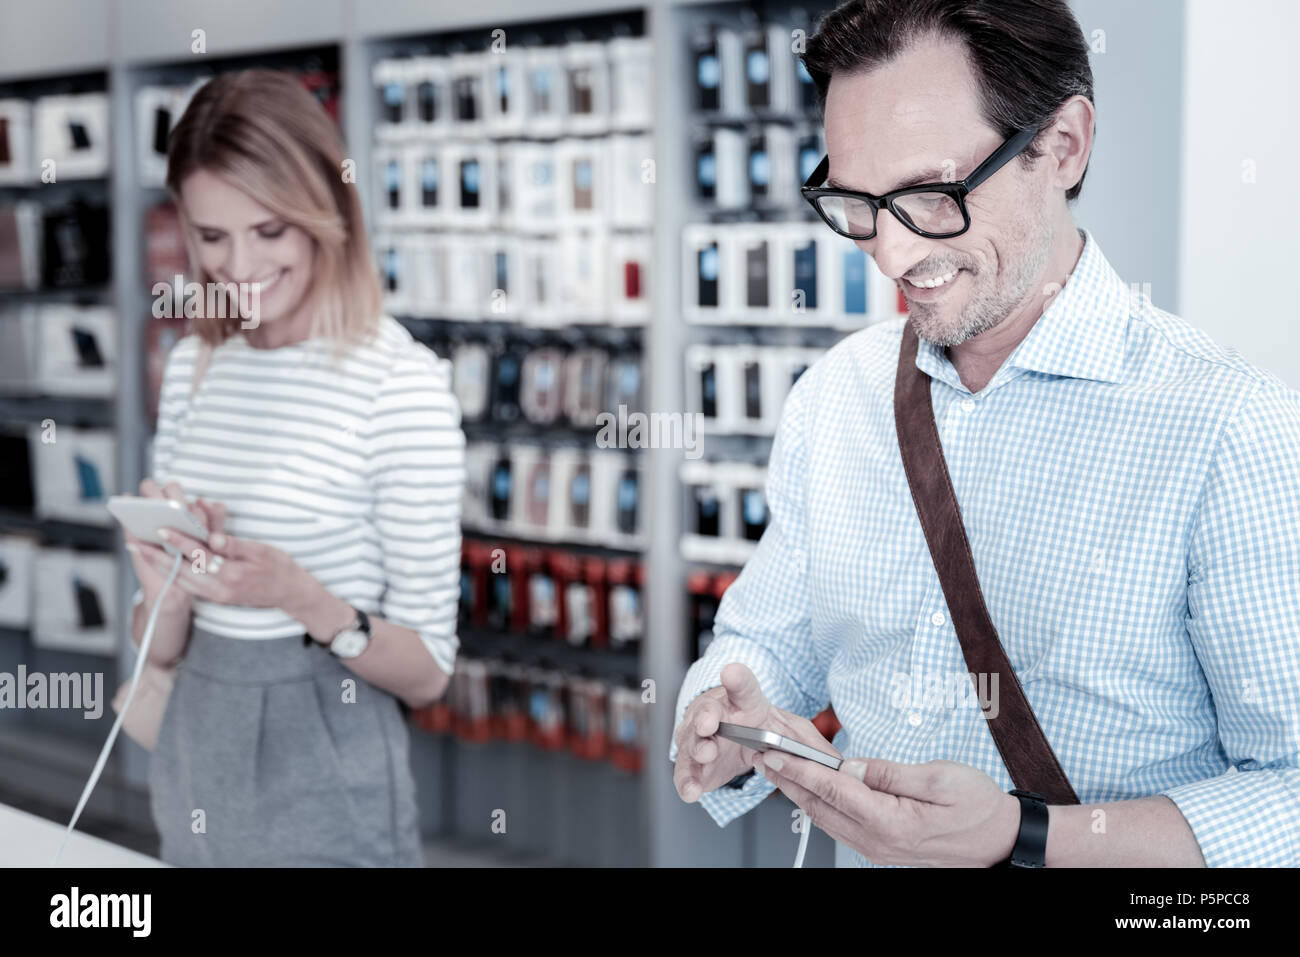 Calm customers testing devices in a shop - Stock Image